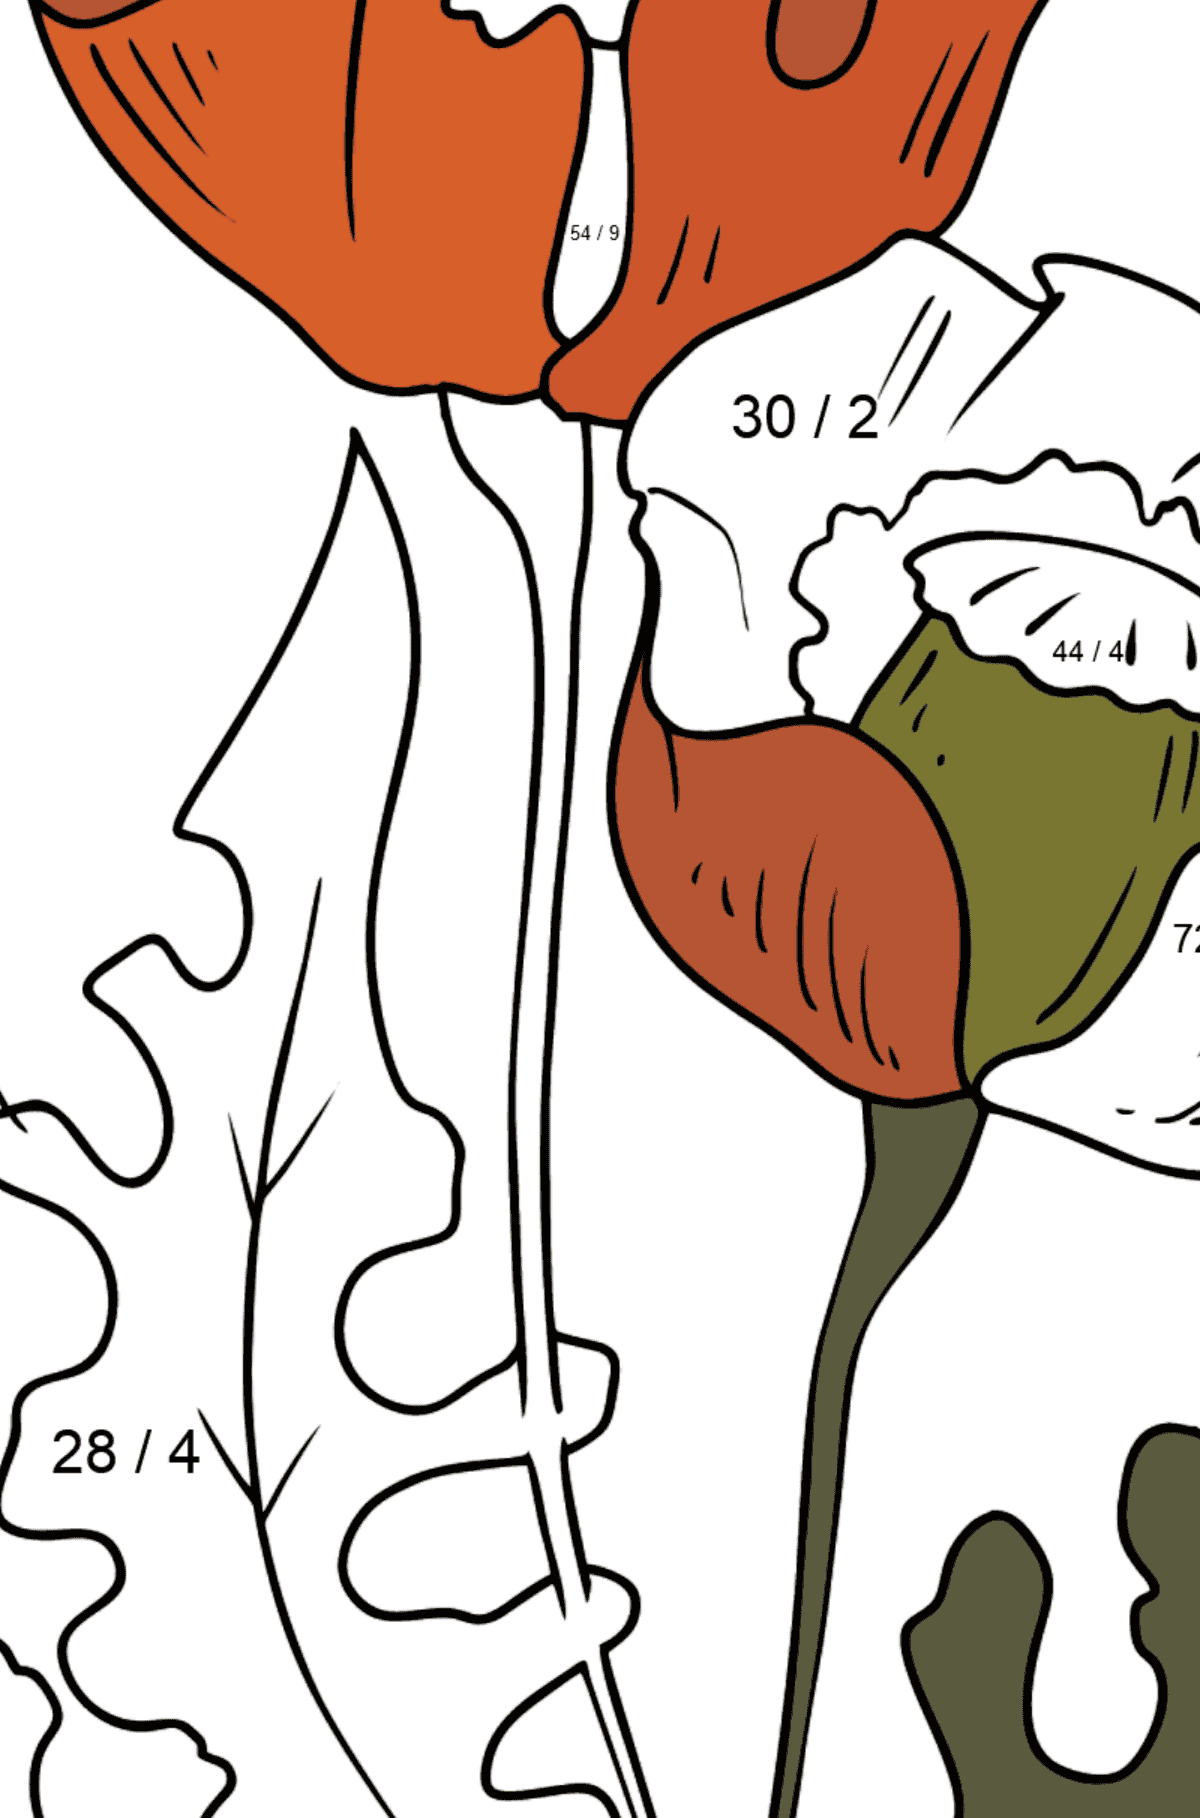 Flower Coloring Page - Beautiful Poppies - Math Coloring - Division for Kids